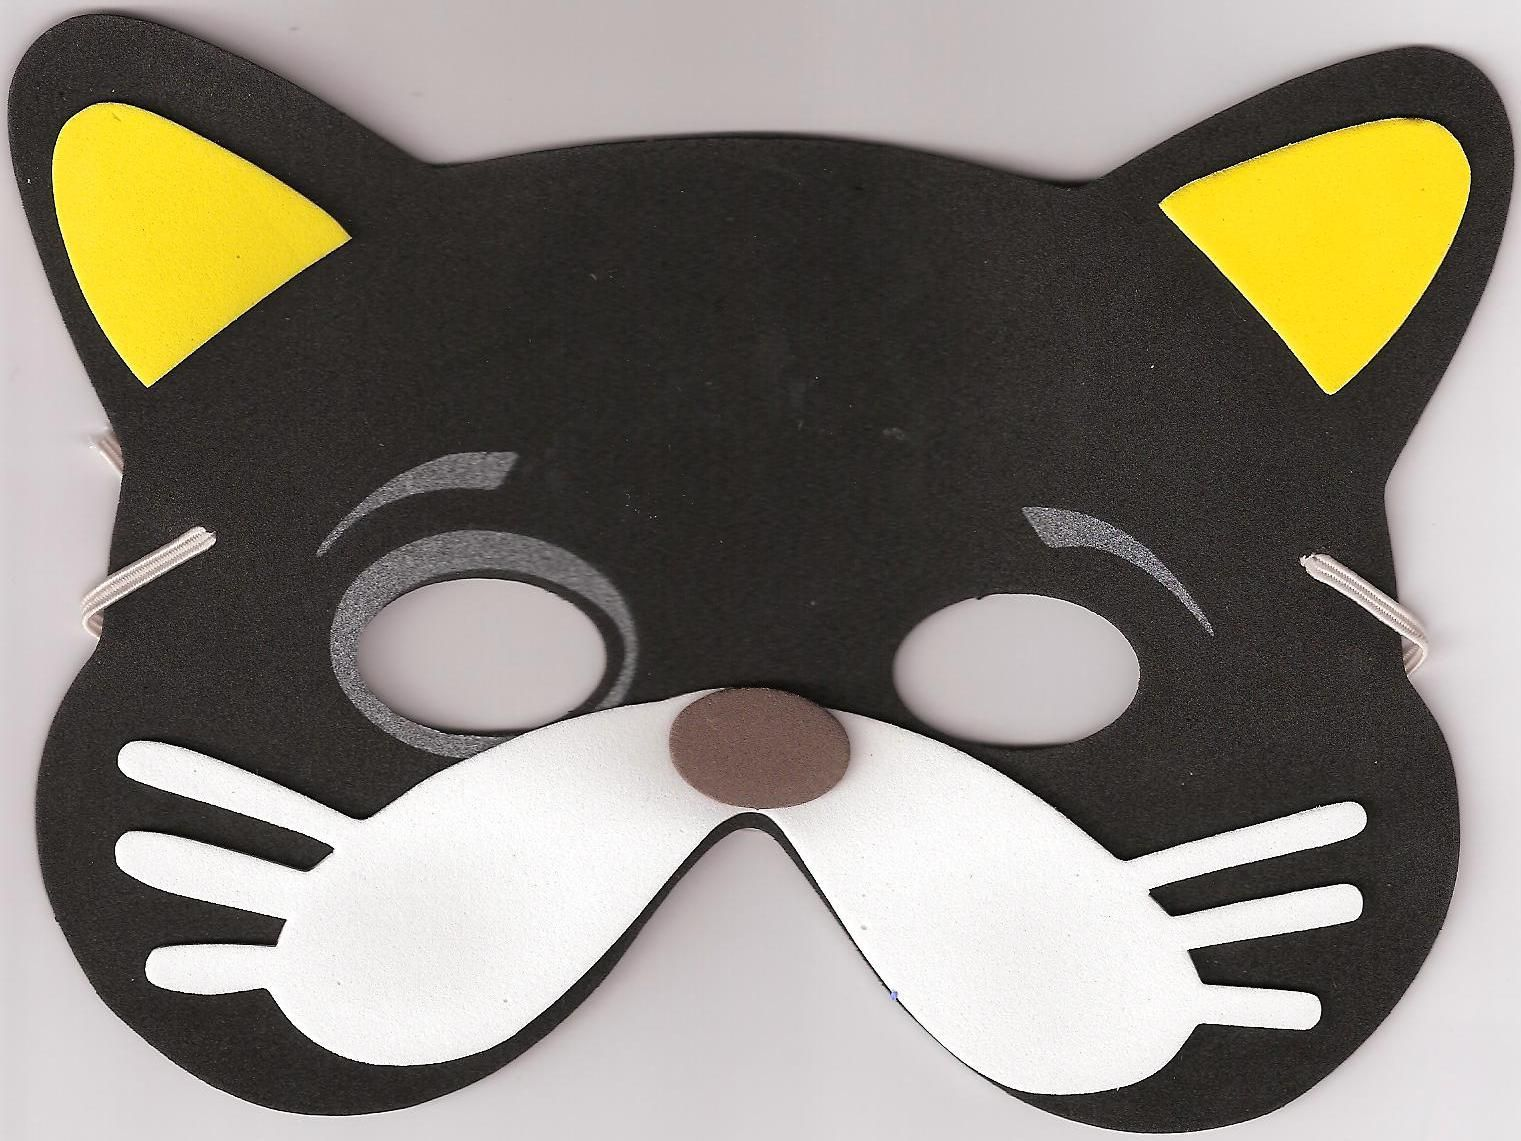 Diy party costume mask black cat kitten template printable - Make Your Own Cat Mask Craft